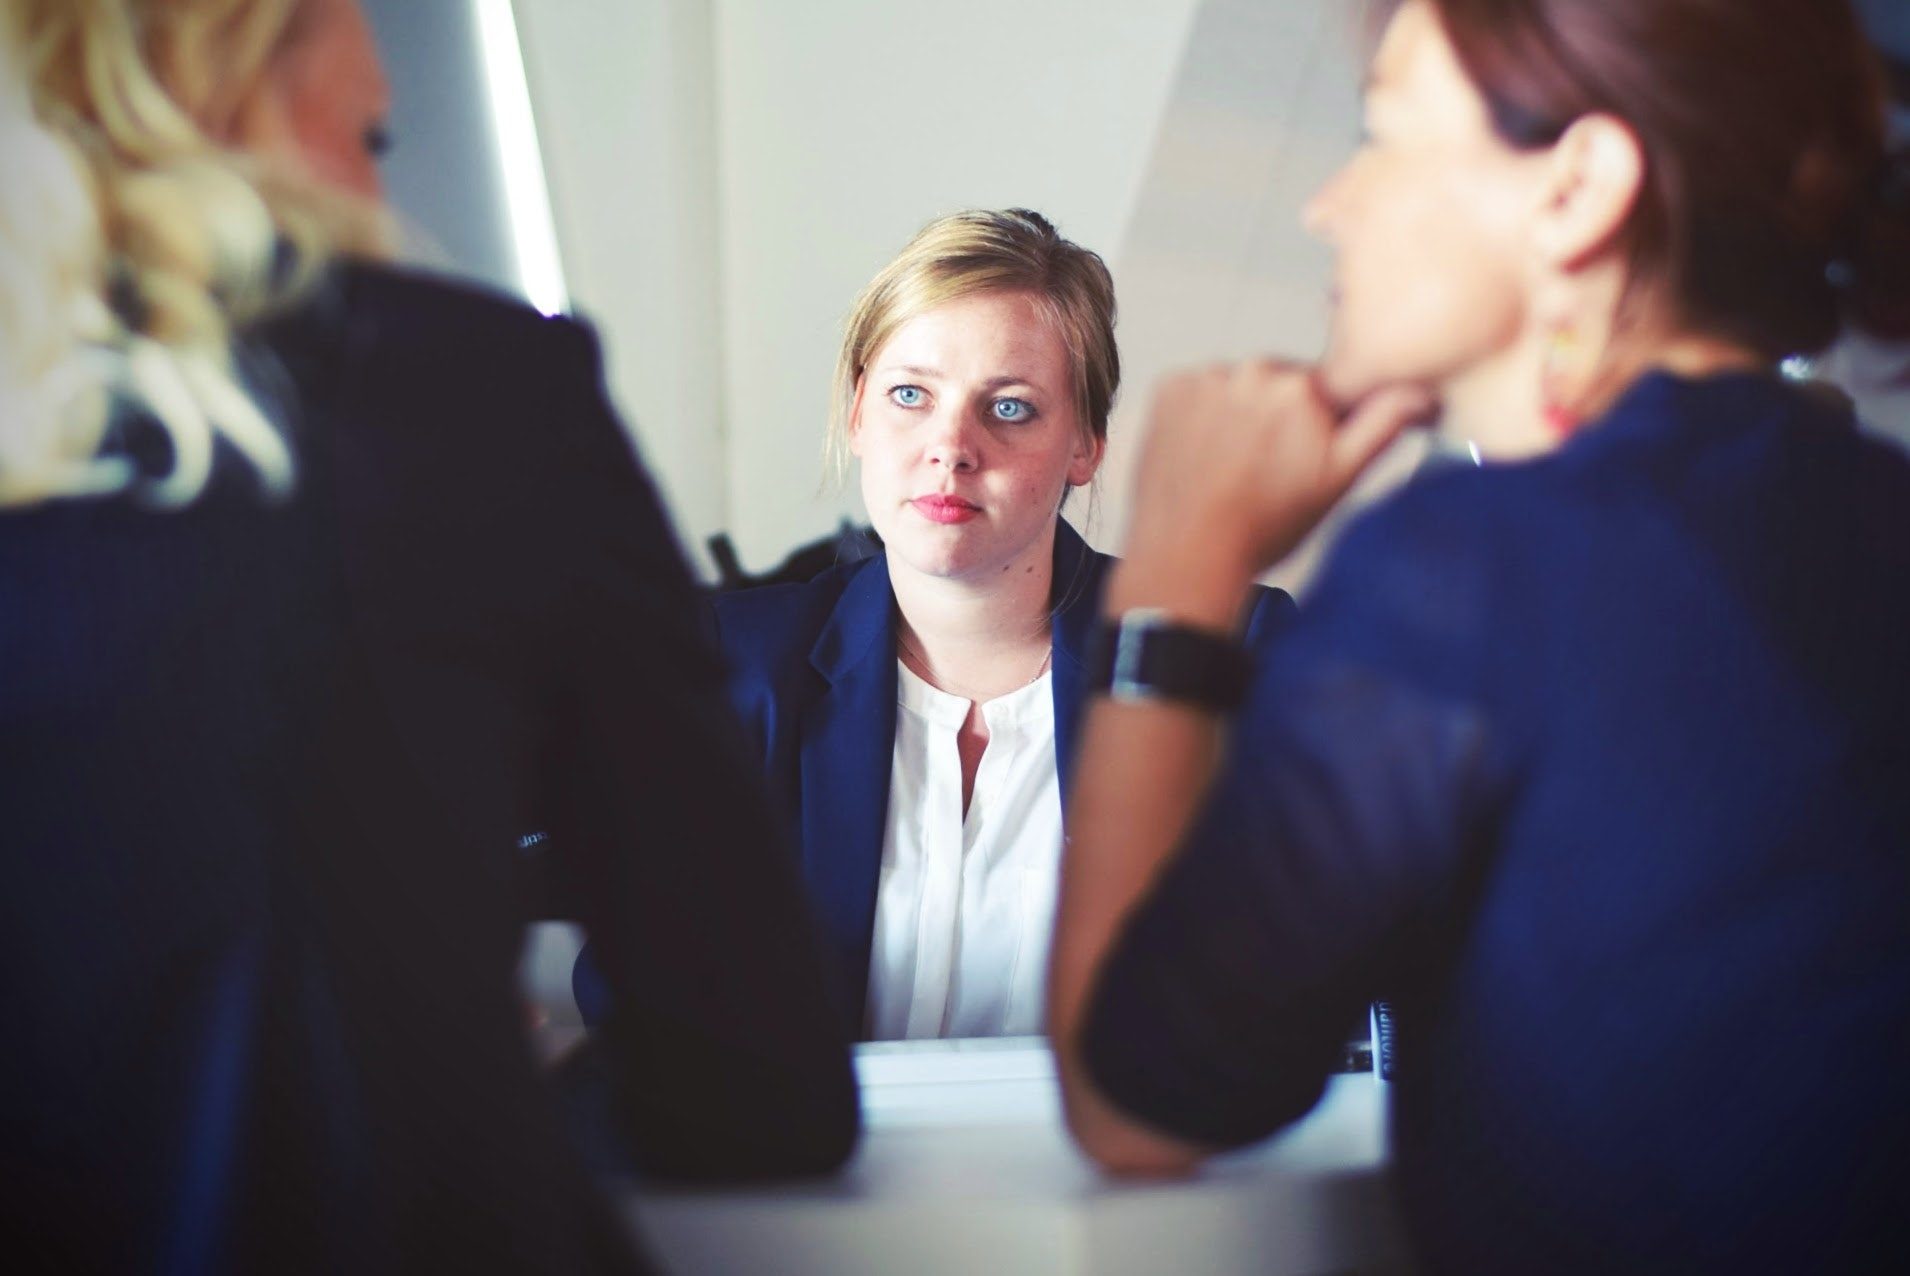 One of the dangers of a high employee turnover rate is it costs money to interview and hire new employees